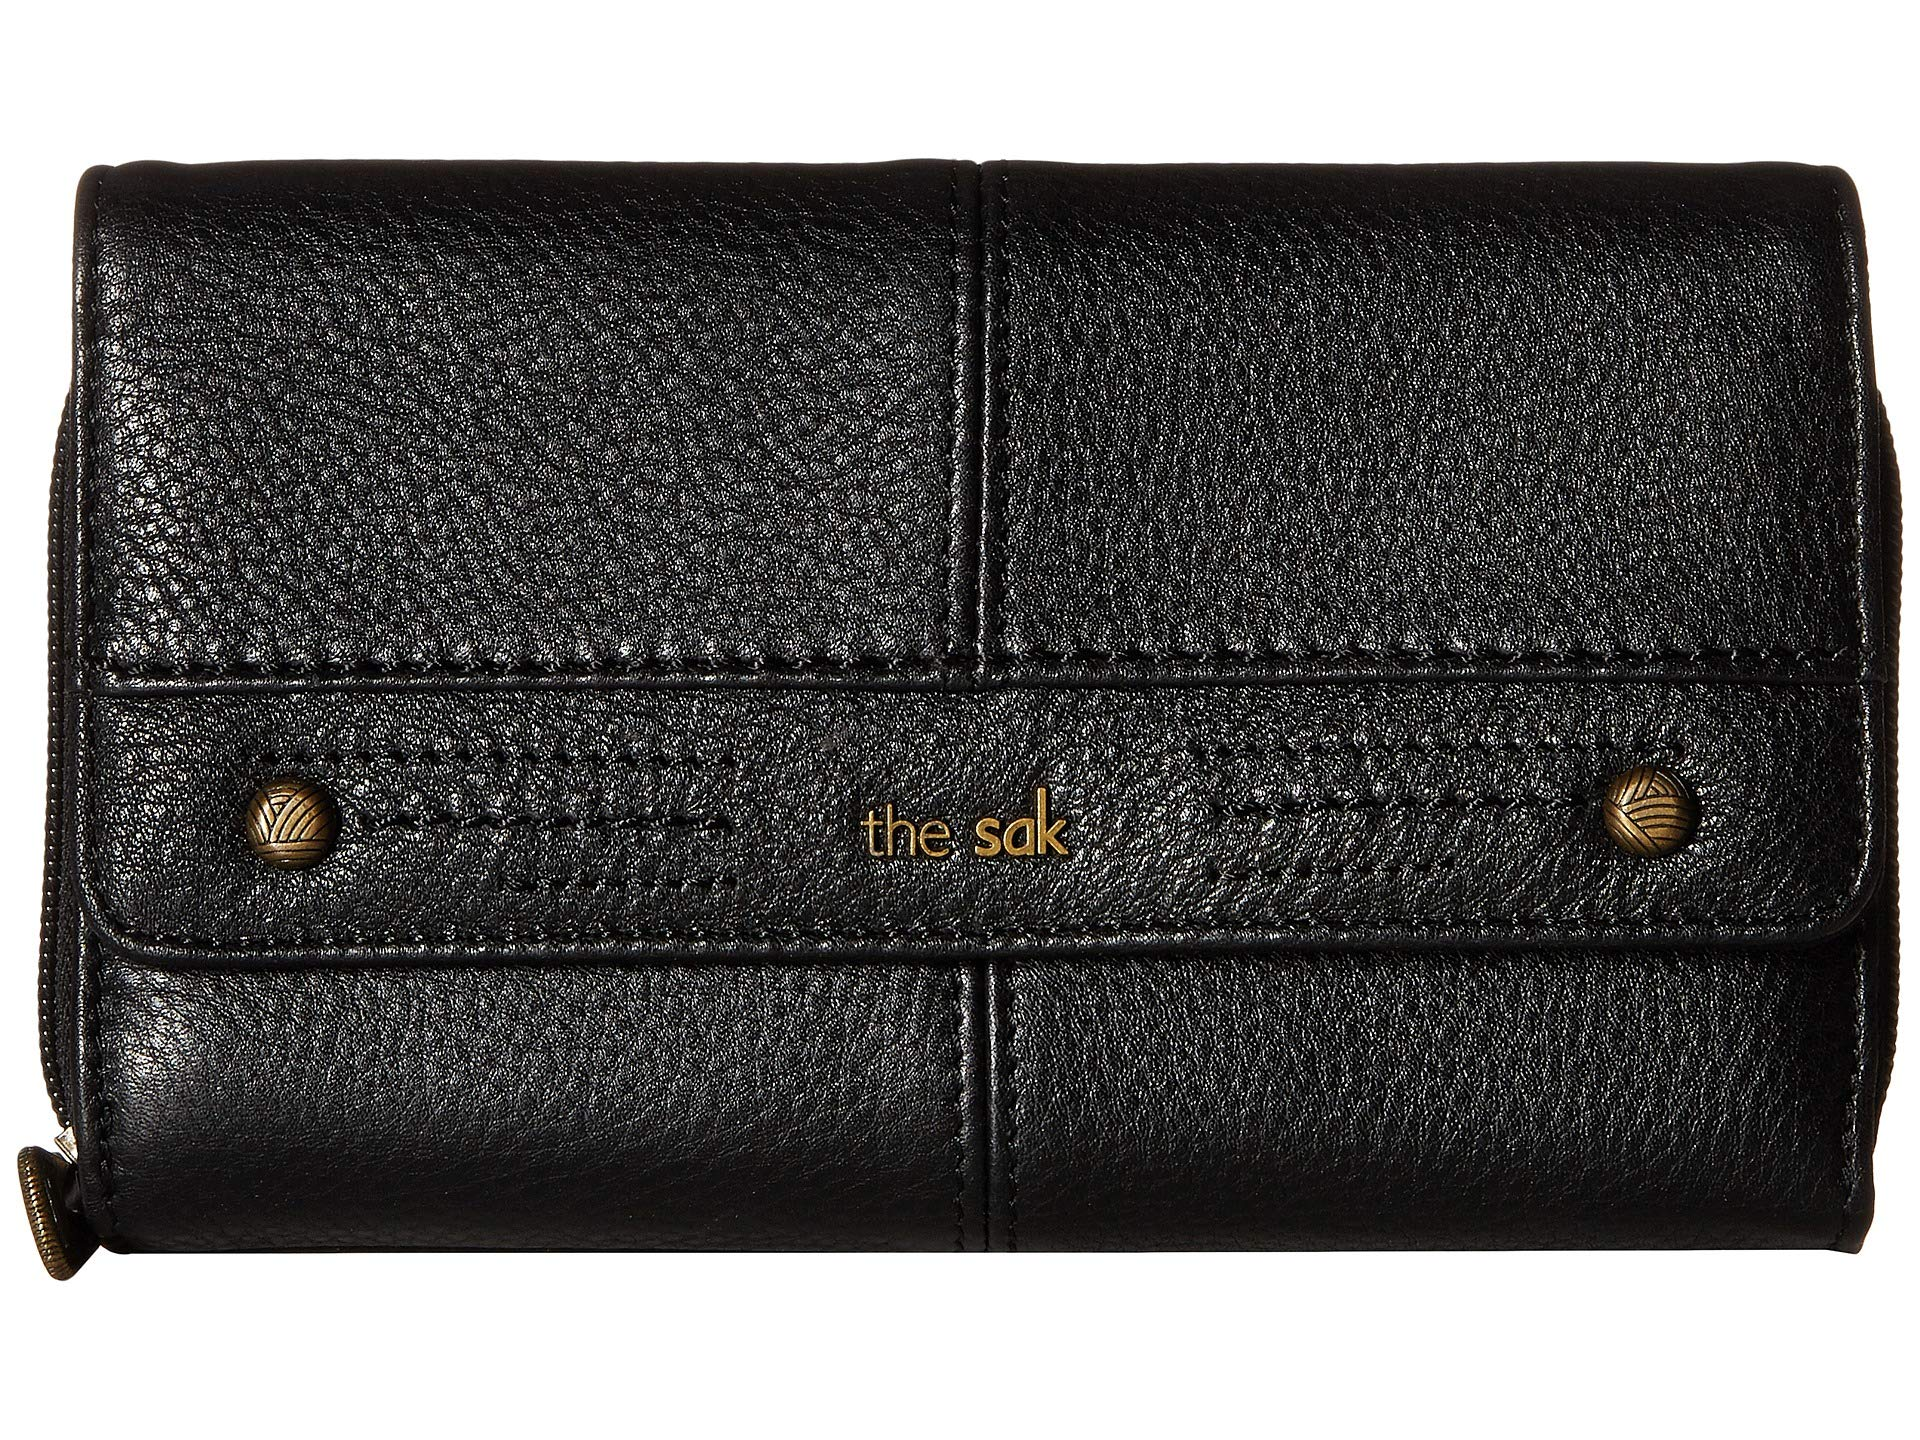 Sequoia Extra Sak The Black Large Wallet CZfHx0qpw